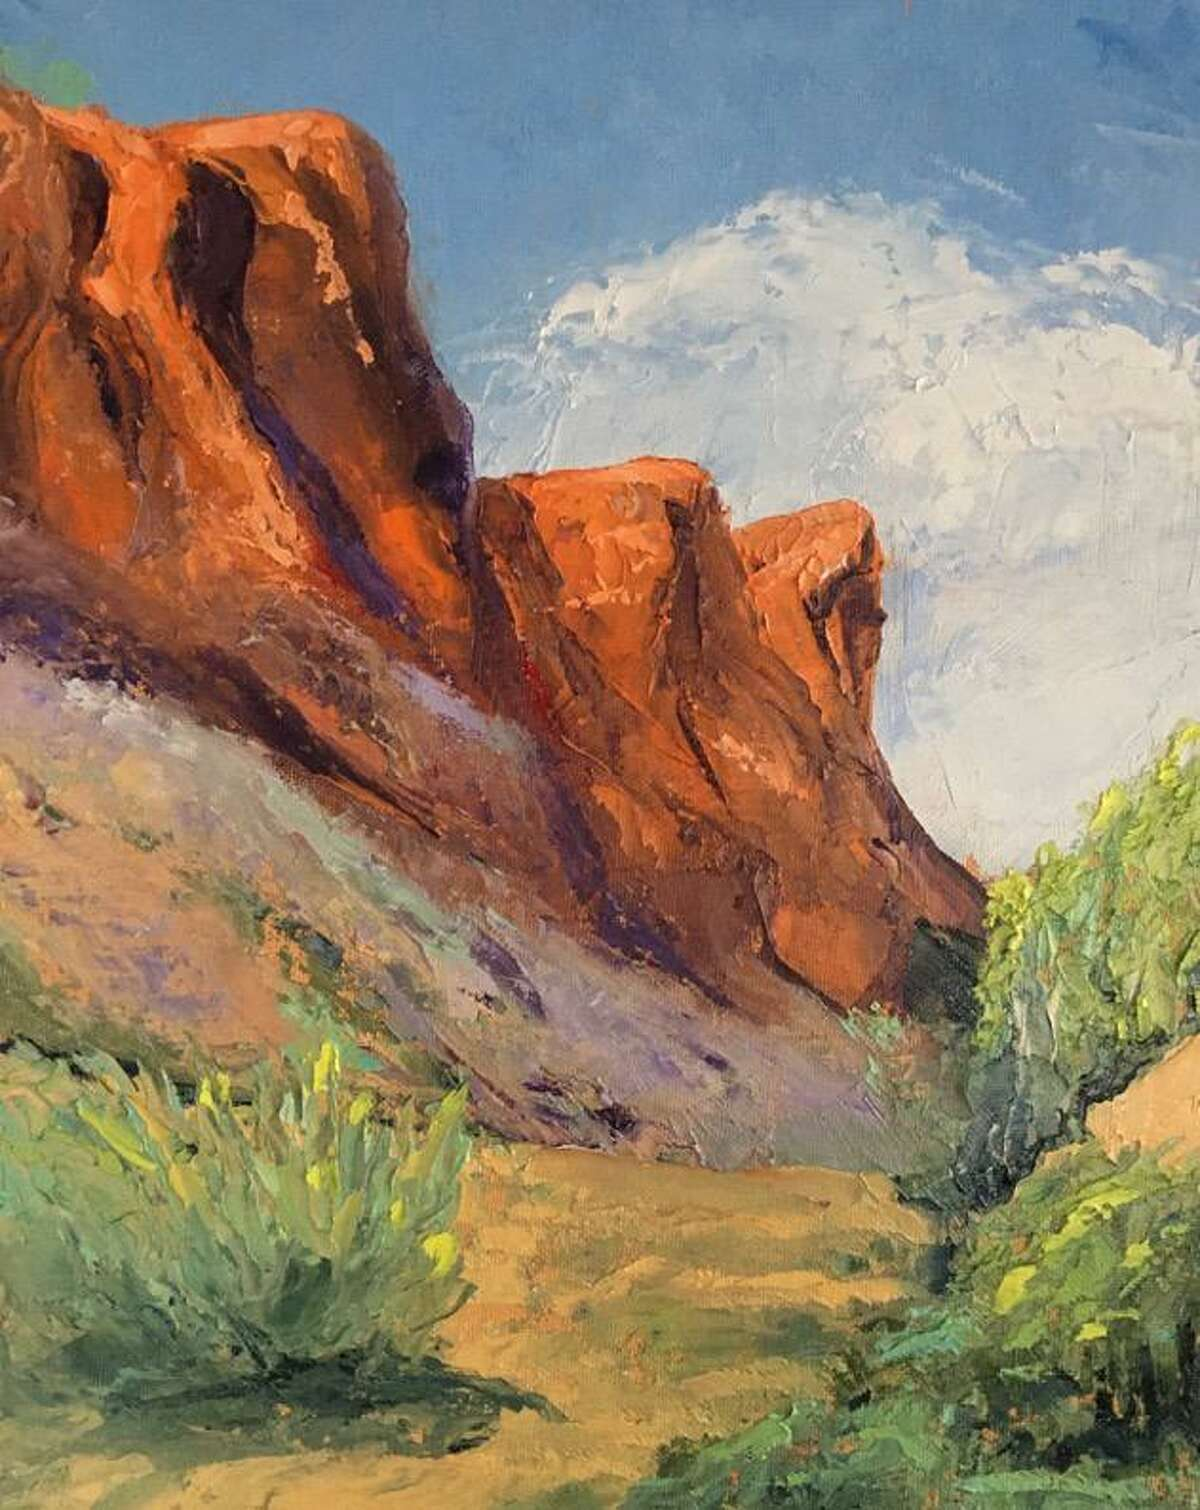 Rowayton Arts Center's Cinco de Mayo Online Paint and Sip is May 5 at 4:30 p.m. RAC Instructor Susan Fehlinger will lead participants through a Southwestern landscape painting using a palette knife only.